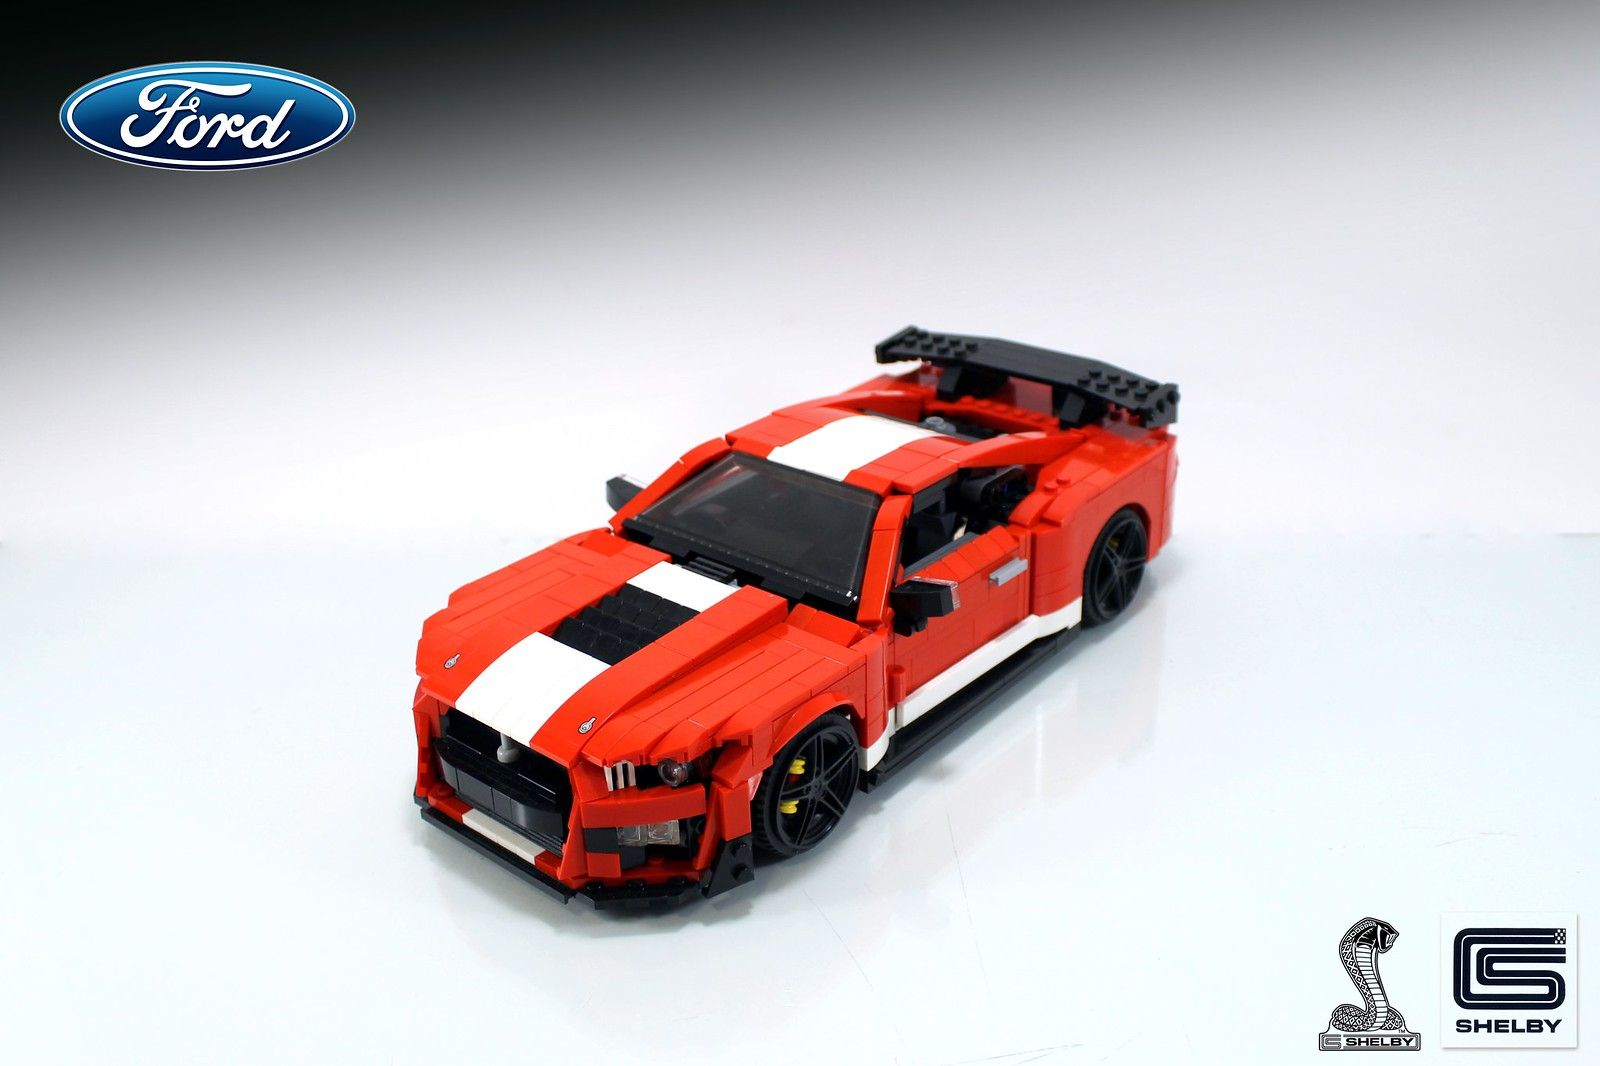 2020 Ford Mustang Shelby Gt500 Lego Cars Lego Wheels Shelby Gt500